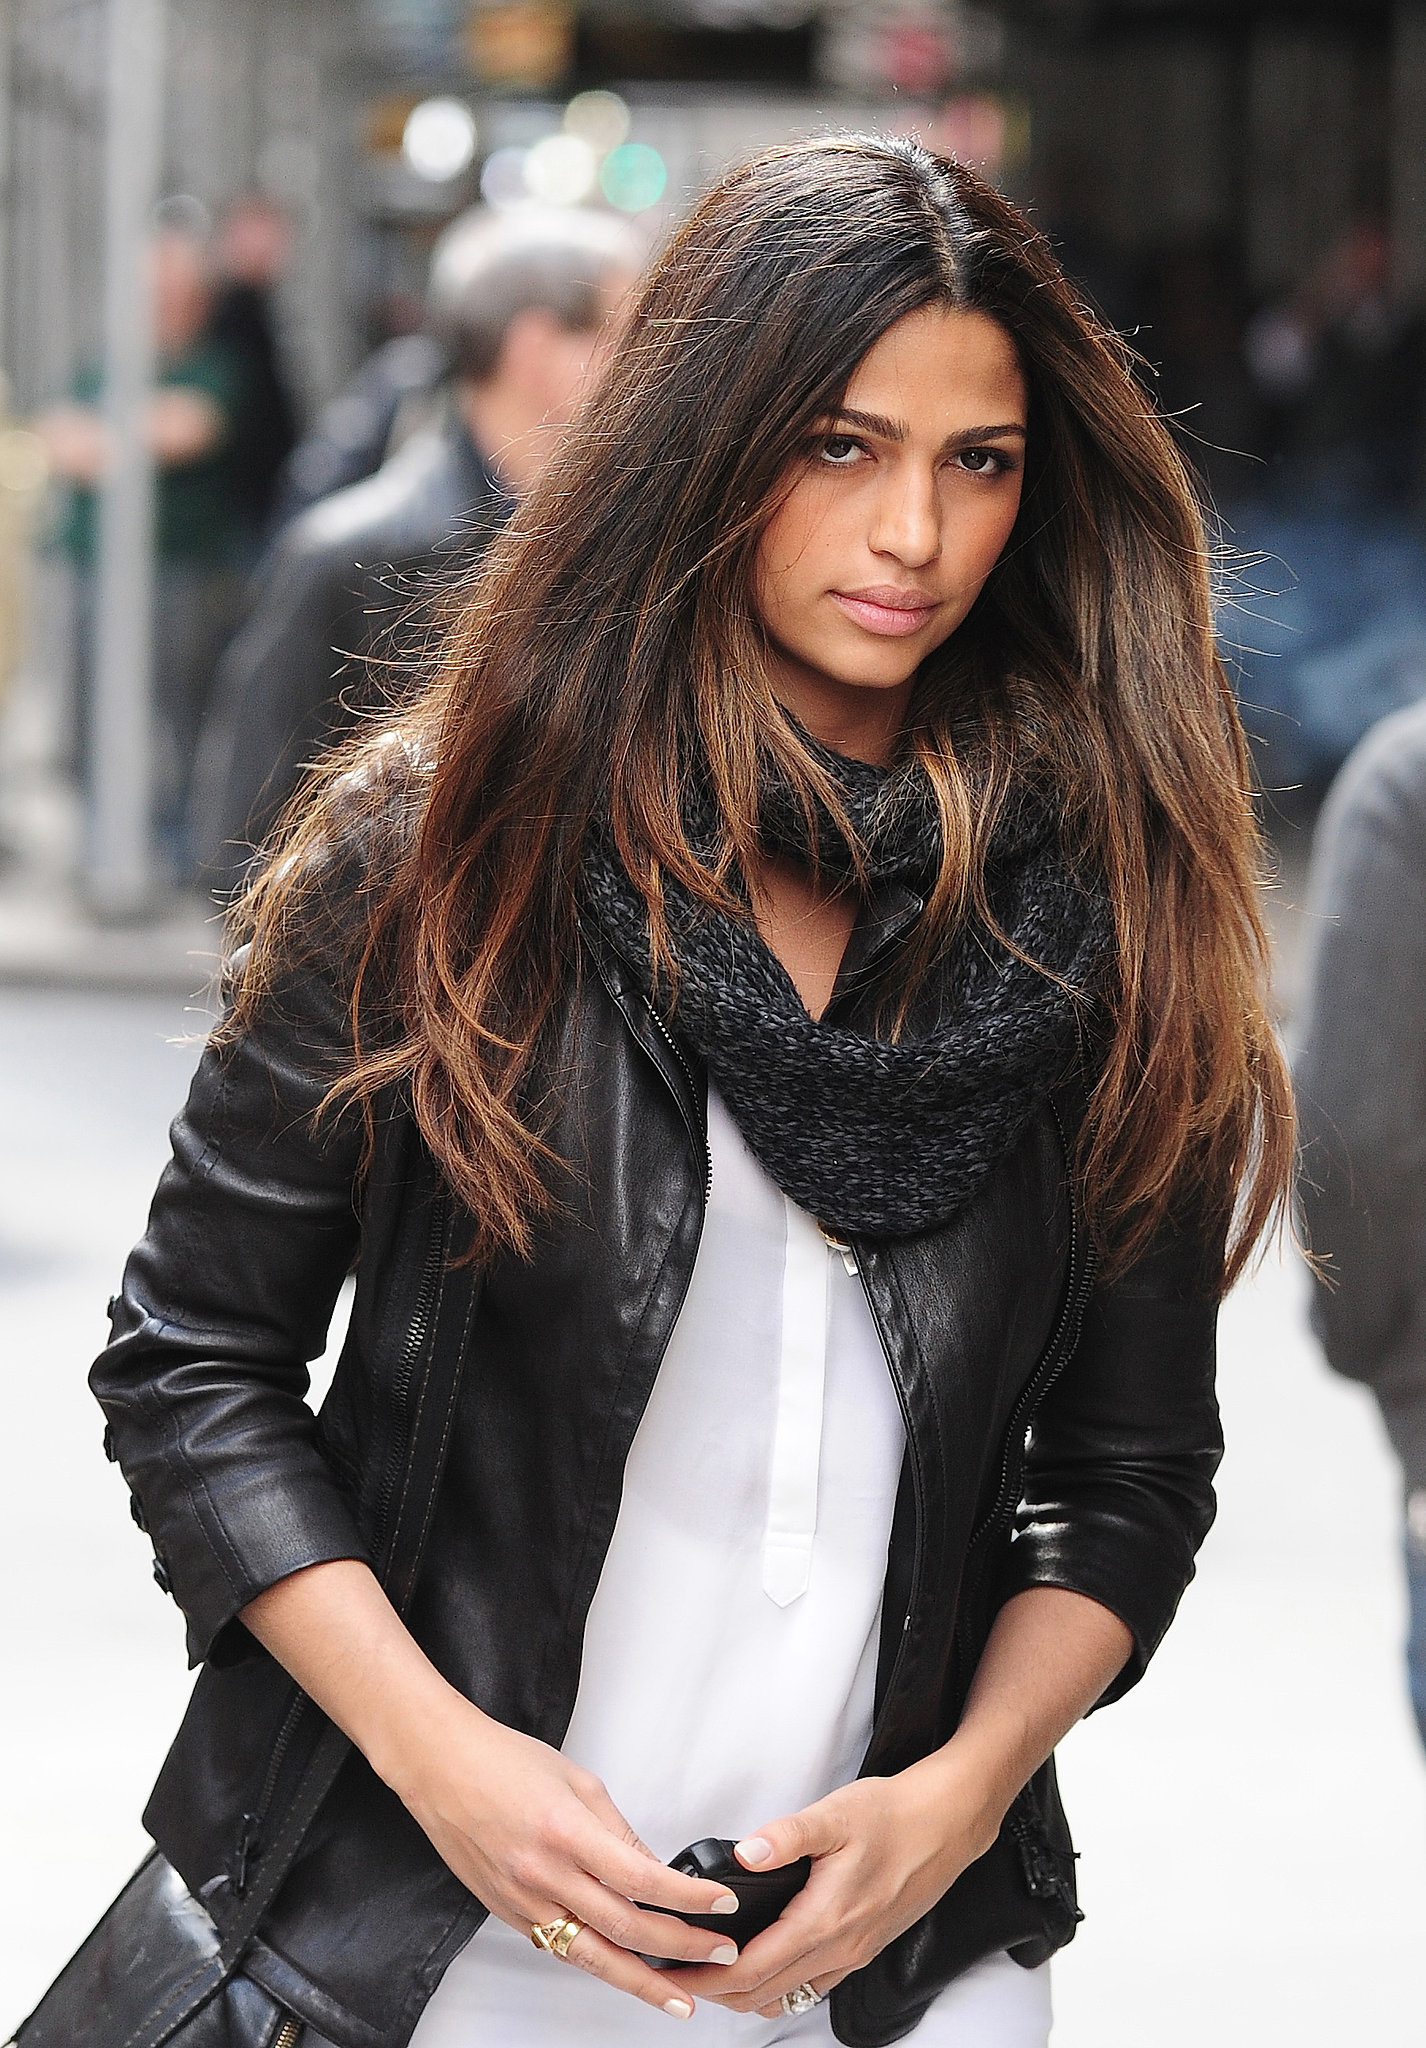 Nothing gives off a more casual vibe than your hair's natural texture. To achieve a look similar to Camila Alves's, allow your straight hair to air-dry and use a blow dryer to smooth.